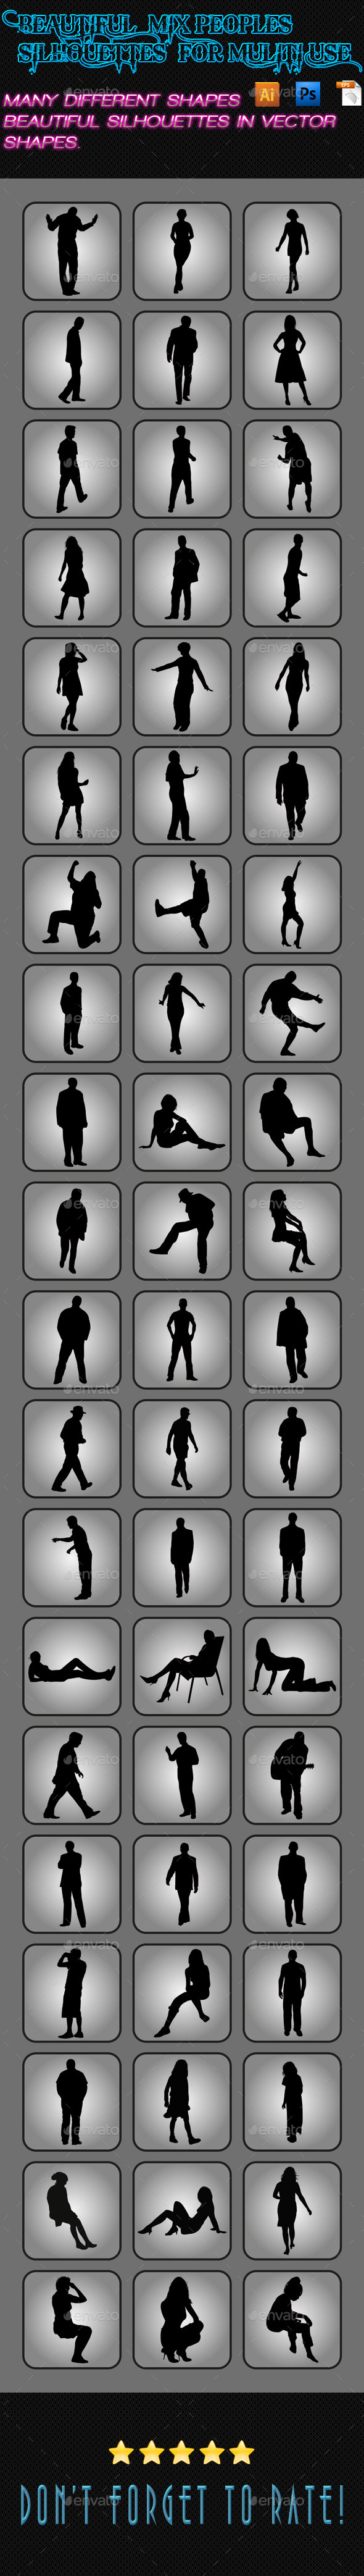 GraphicRiver Mix Peoples Silhouettes 03 9909737